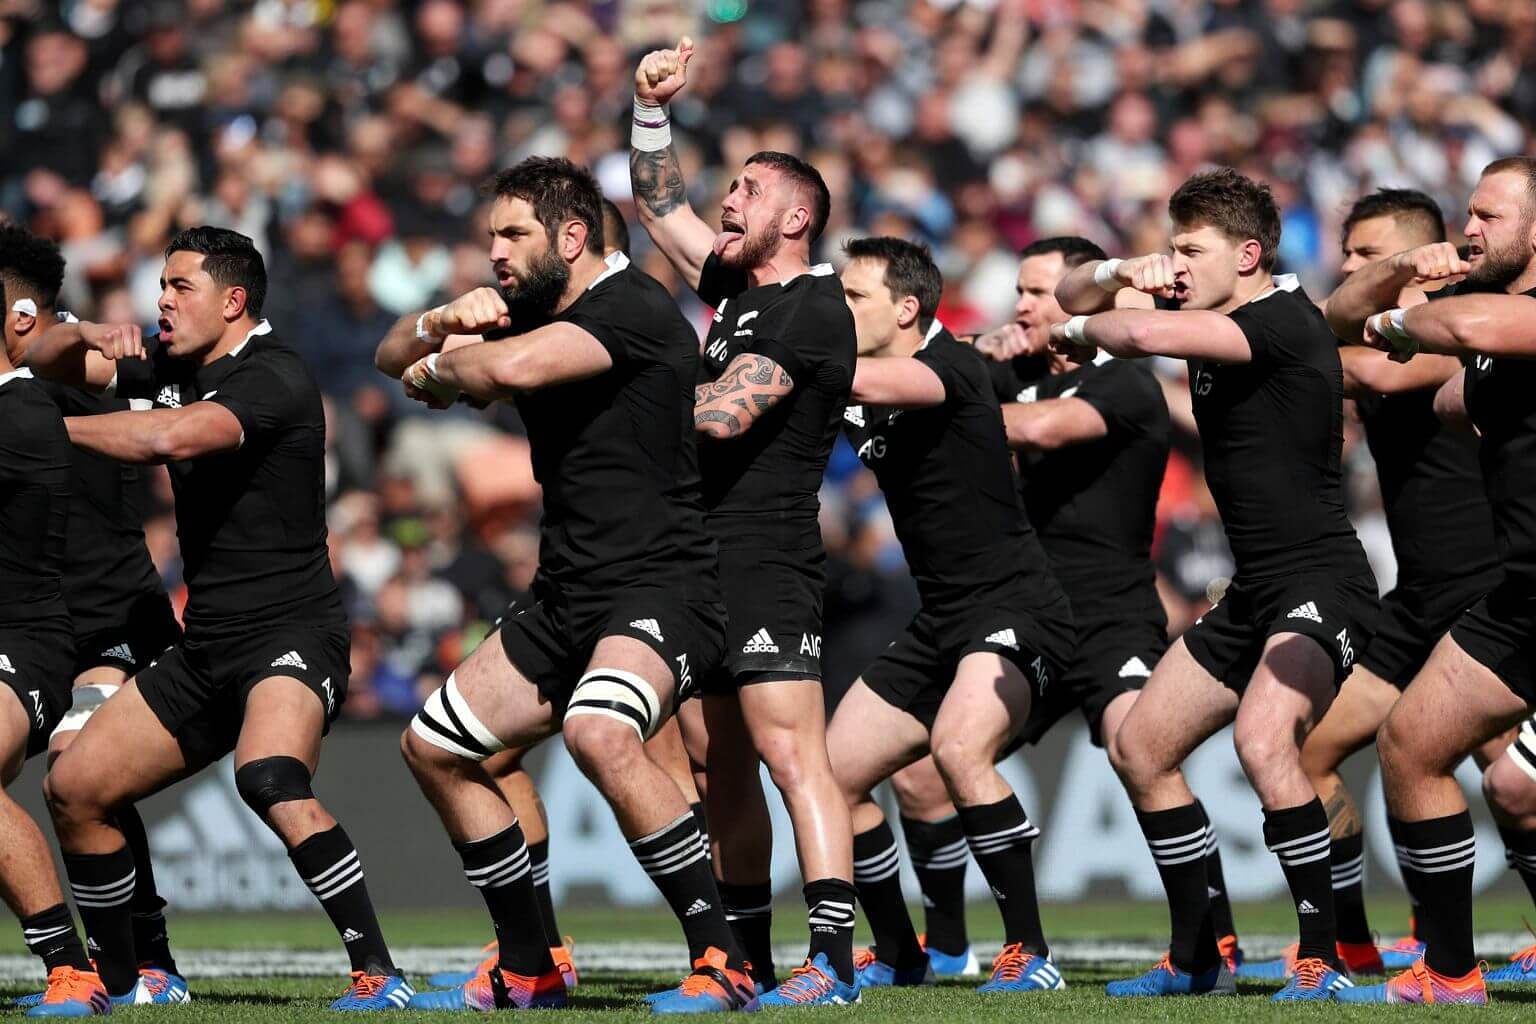 From Ka Mate To Siva Tau The Hakas Of The Rugby World Cup Sport News Top Stories The Straits Times